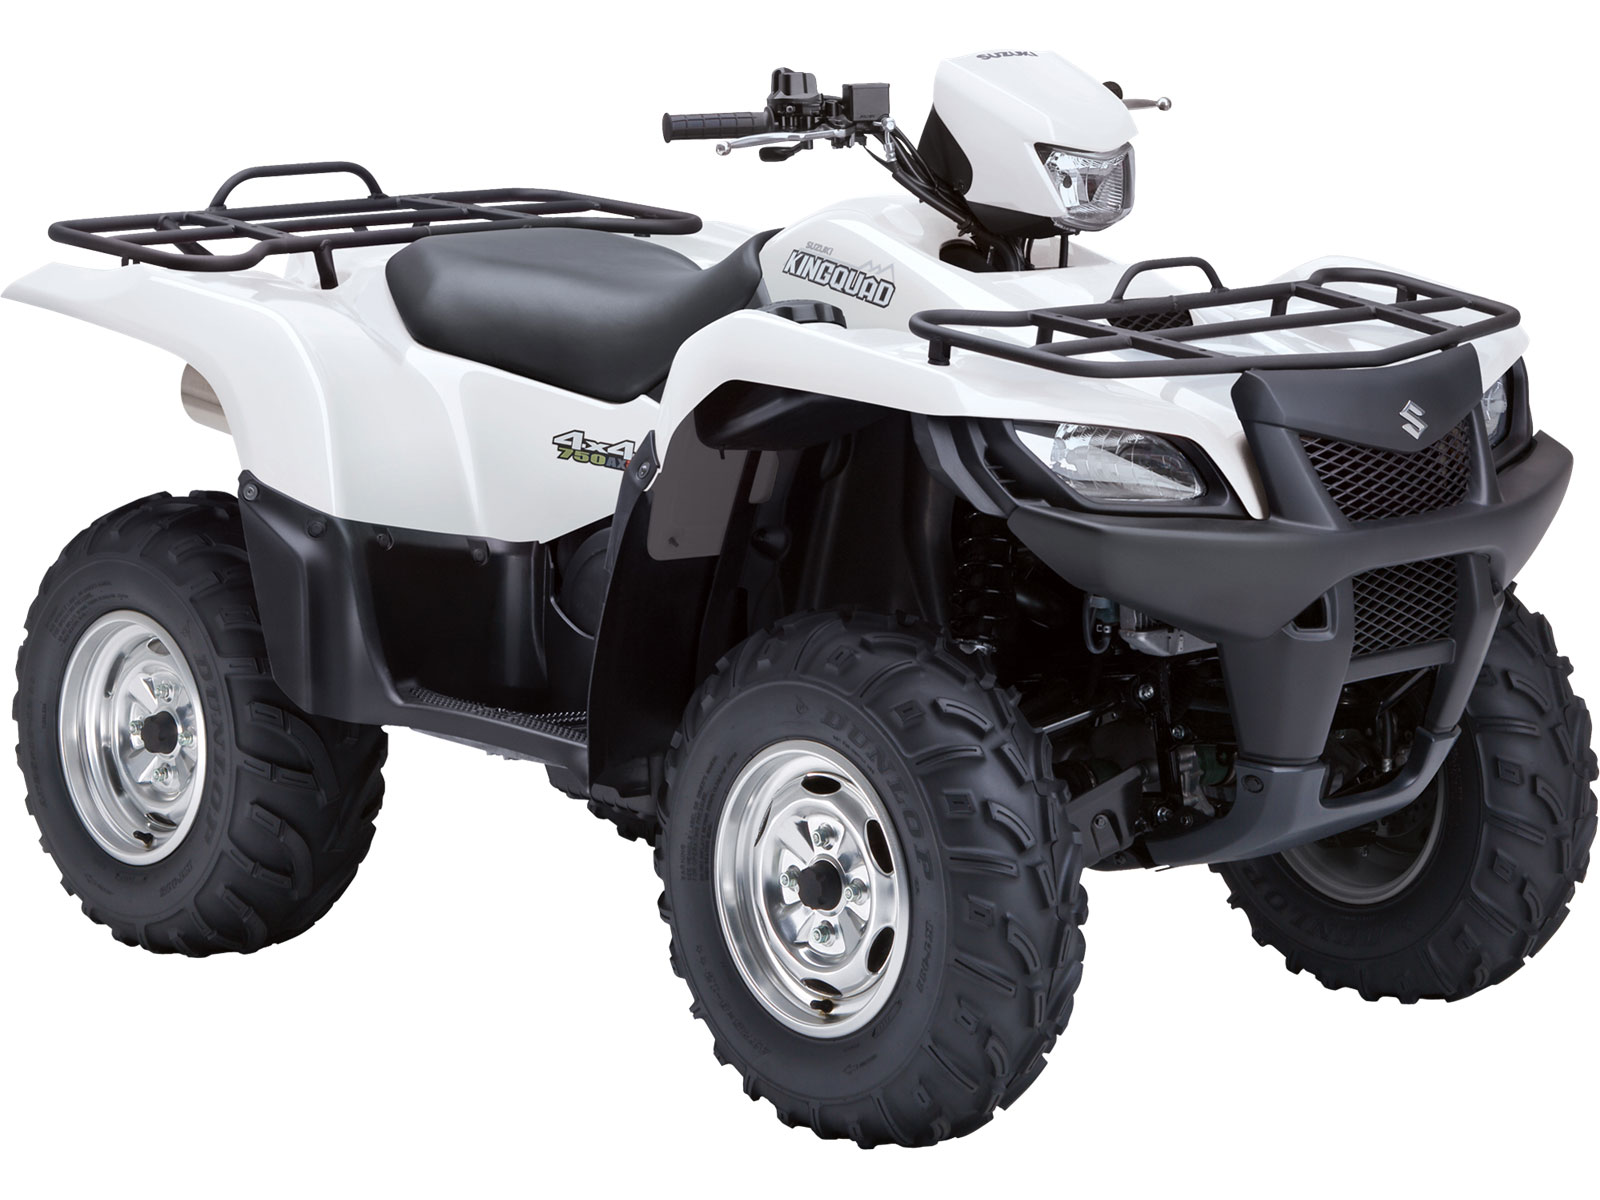 suzuki kingquad 750axi specs 2010 2011 autoevolution. Black Bedroom Furniture Sets. Home Design Ideas